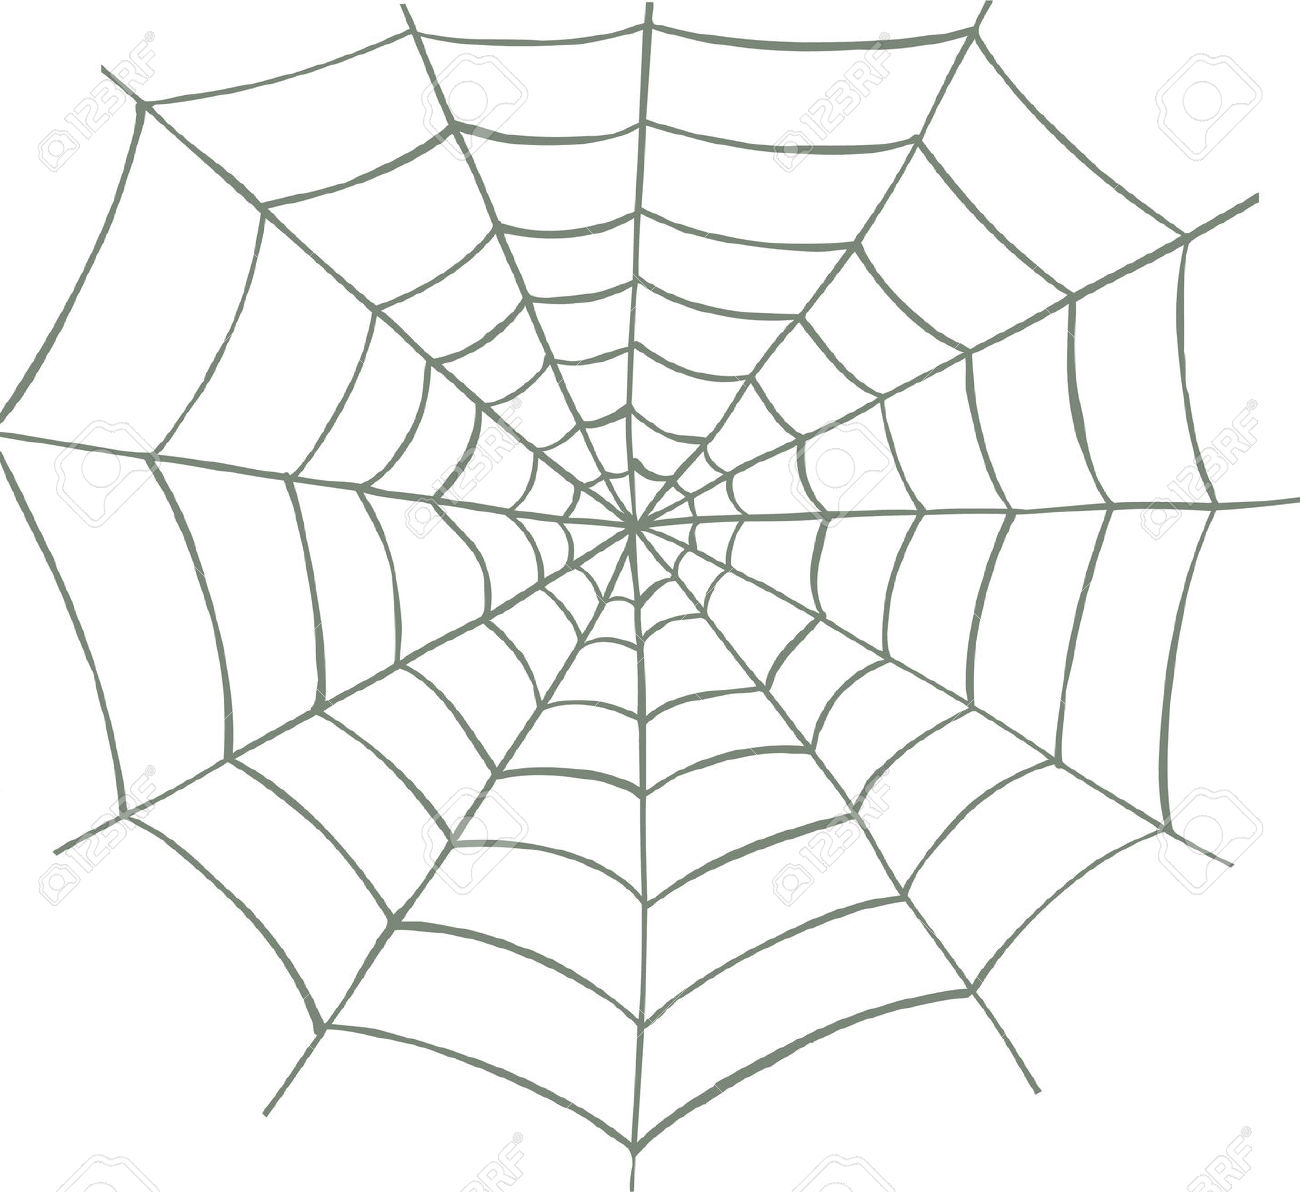 1300x1192 Drawn Spider Web Vector Free Collection Download And Share Drawn